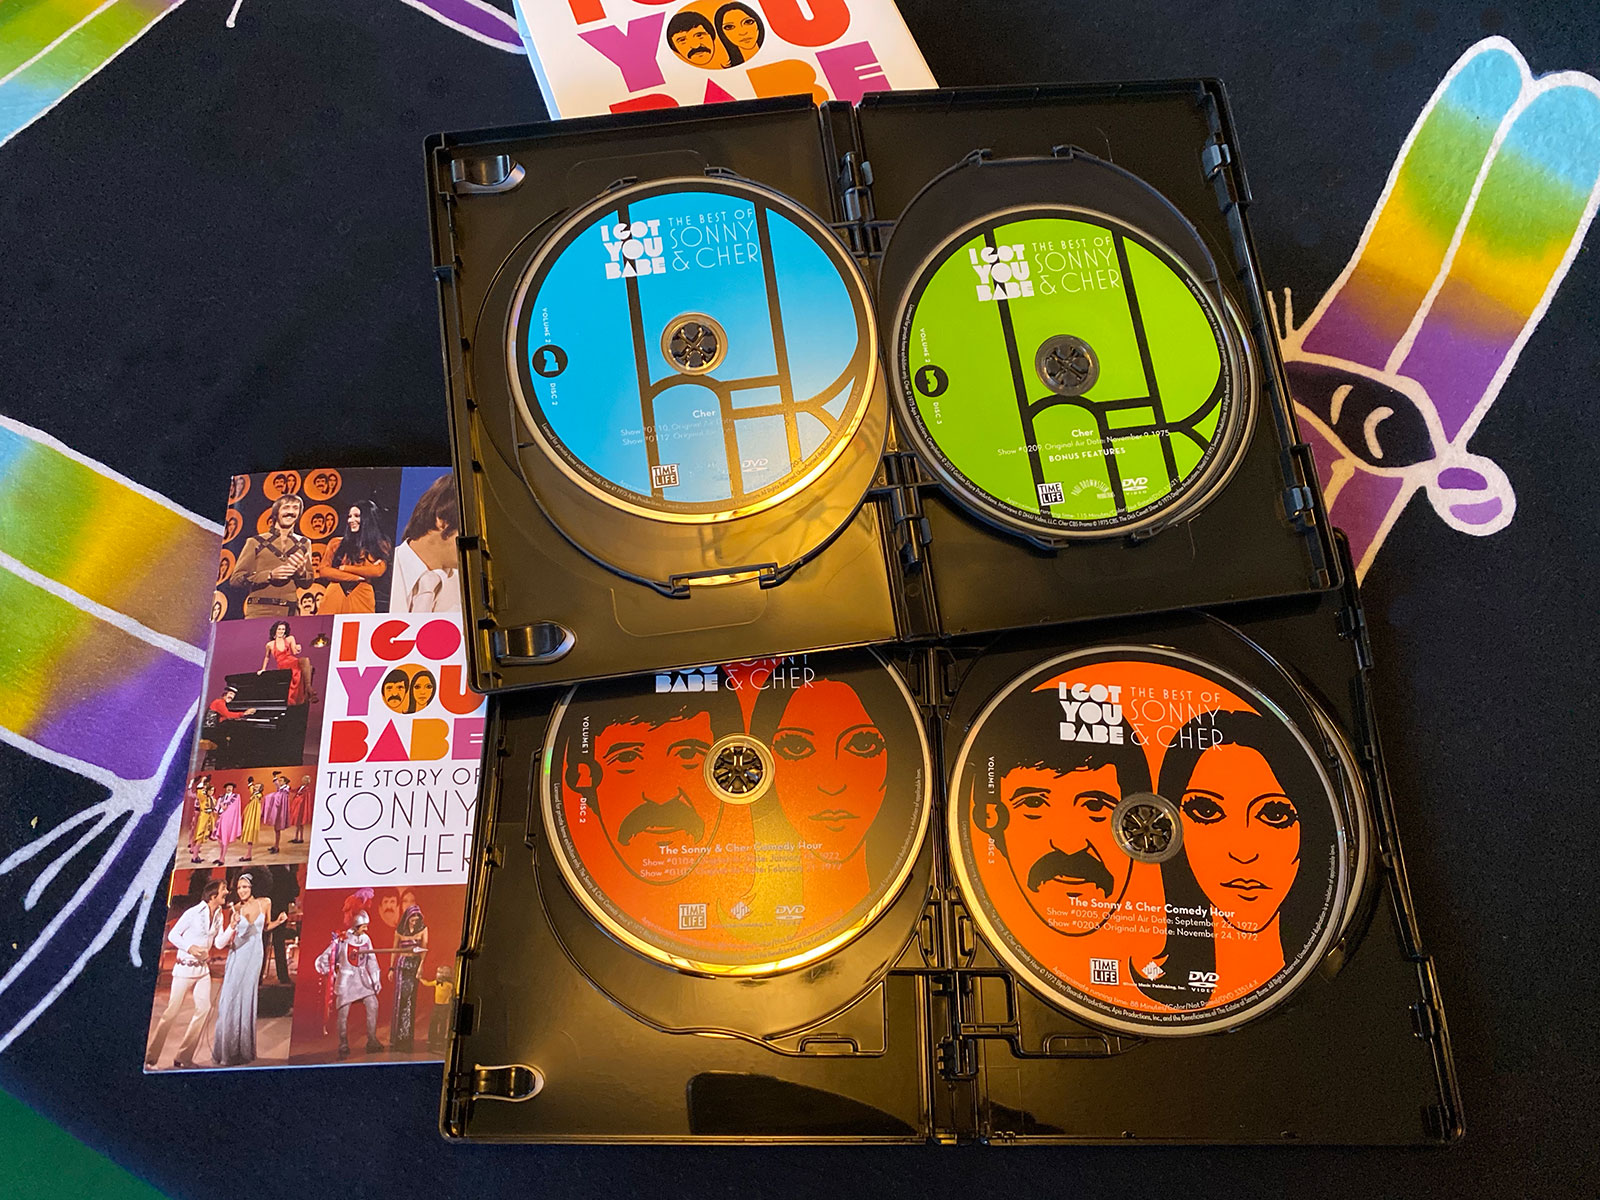 Photo of the DVDs included in The Best of Sonny & Cher DVD Collection